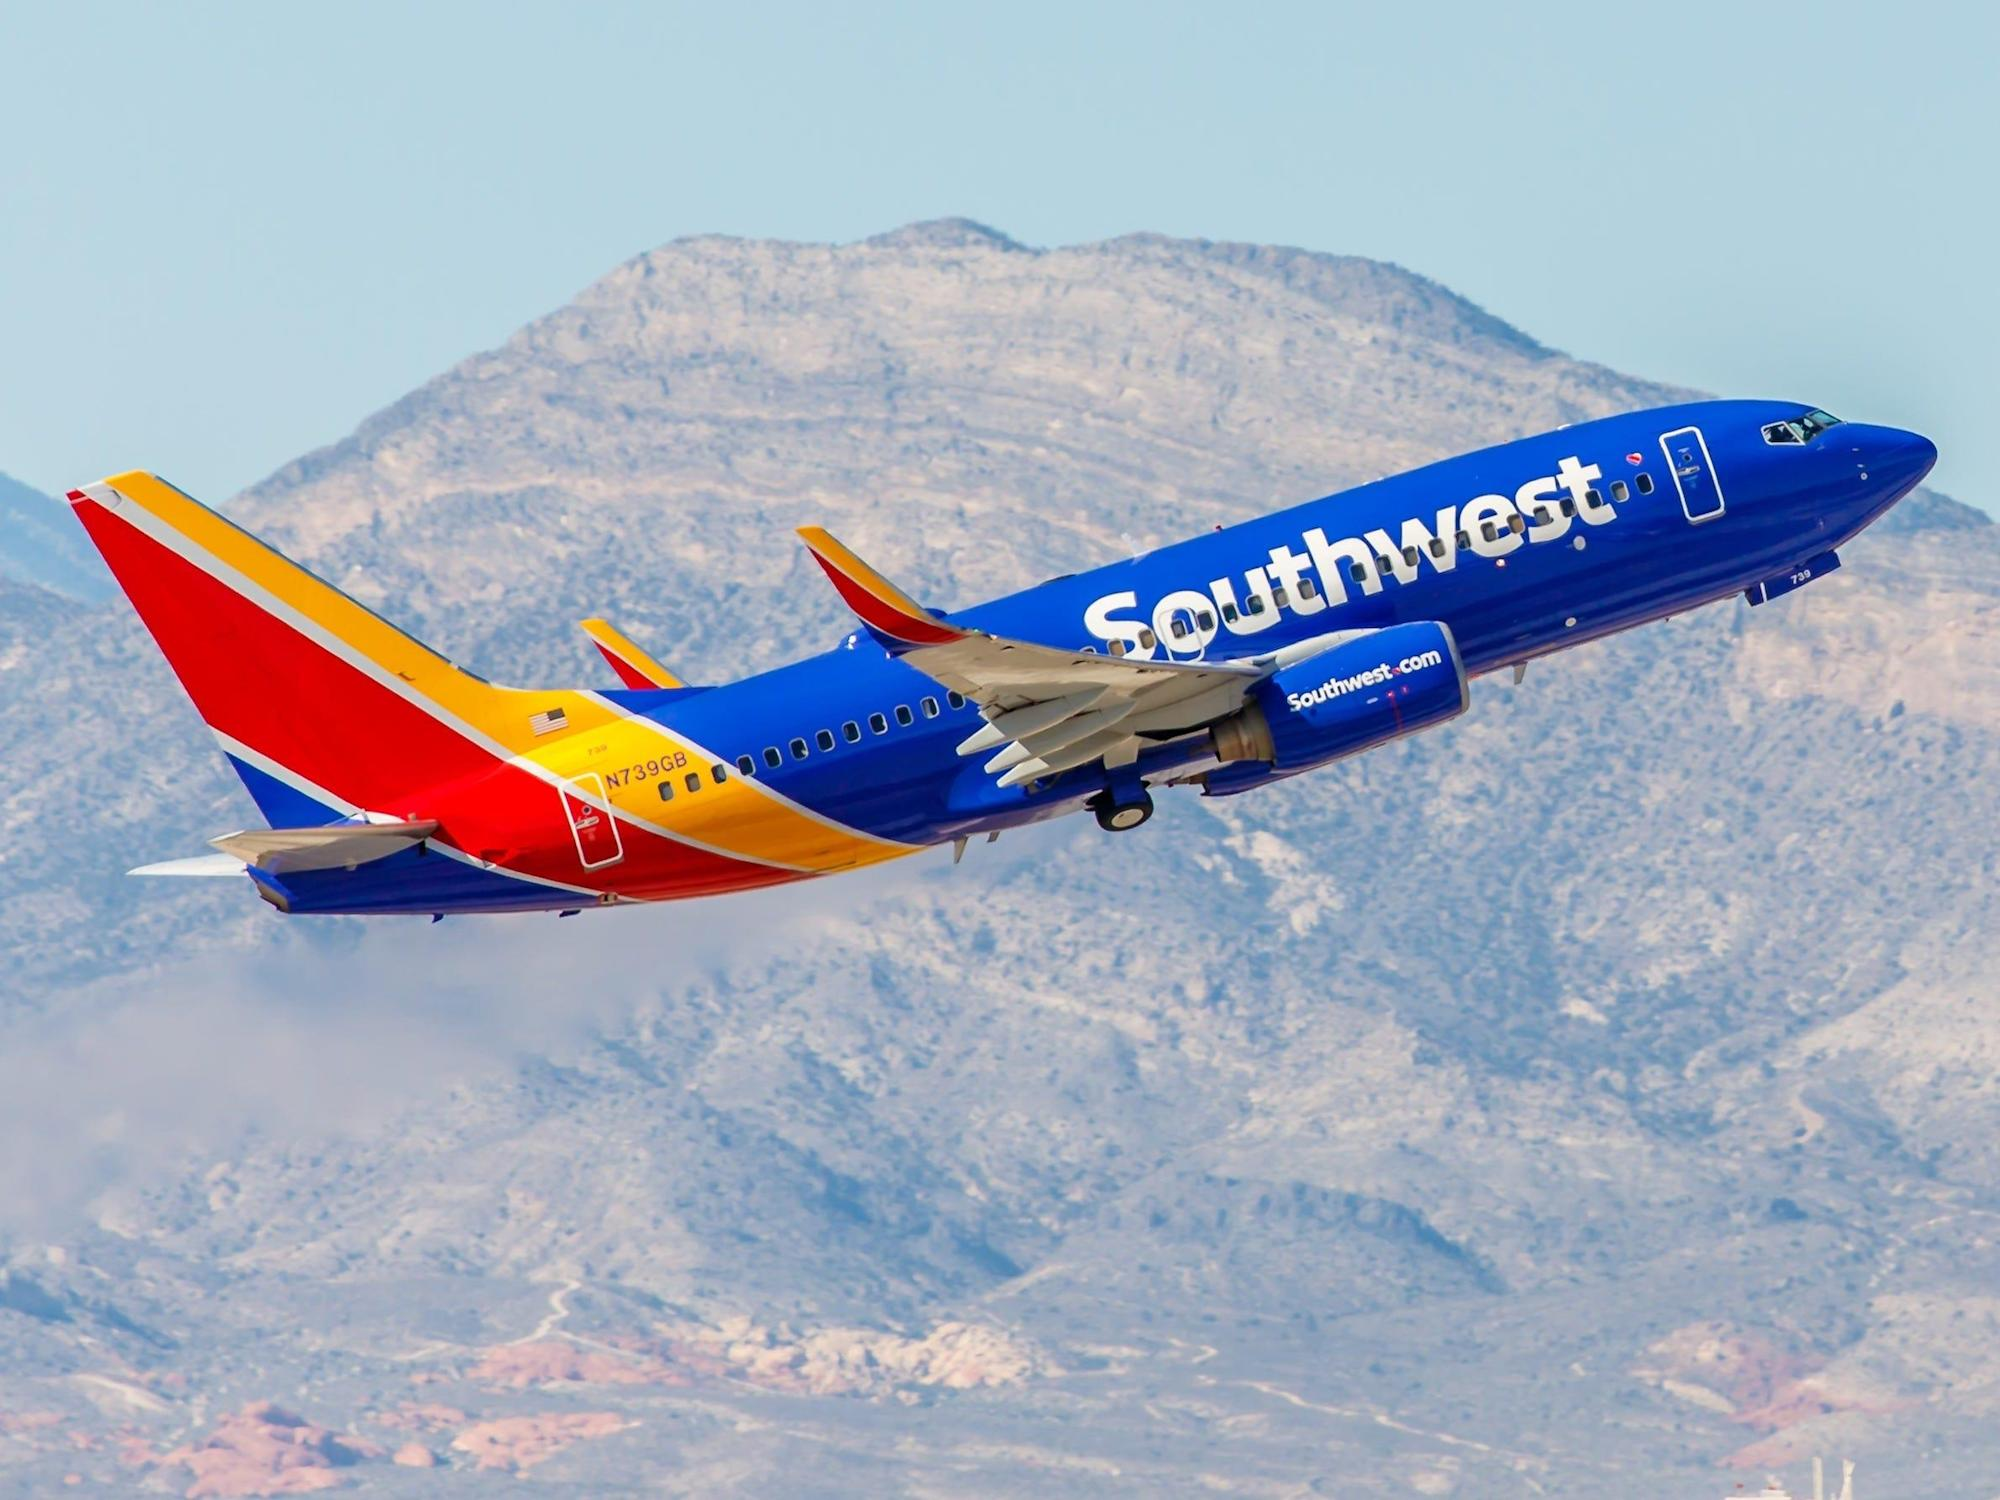 Southwest Airlines just announced 10 new routes and has a new shortest that's only 73 miles long